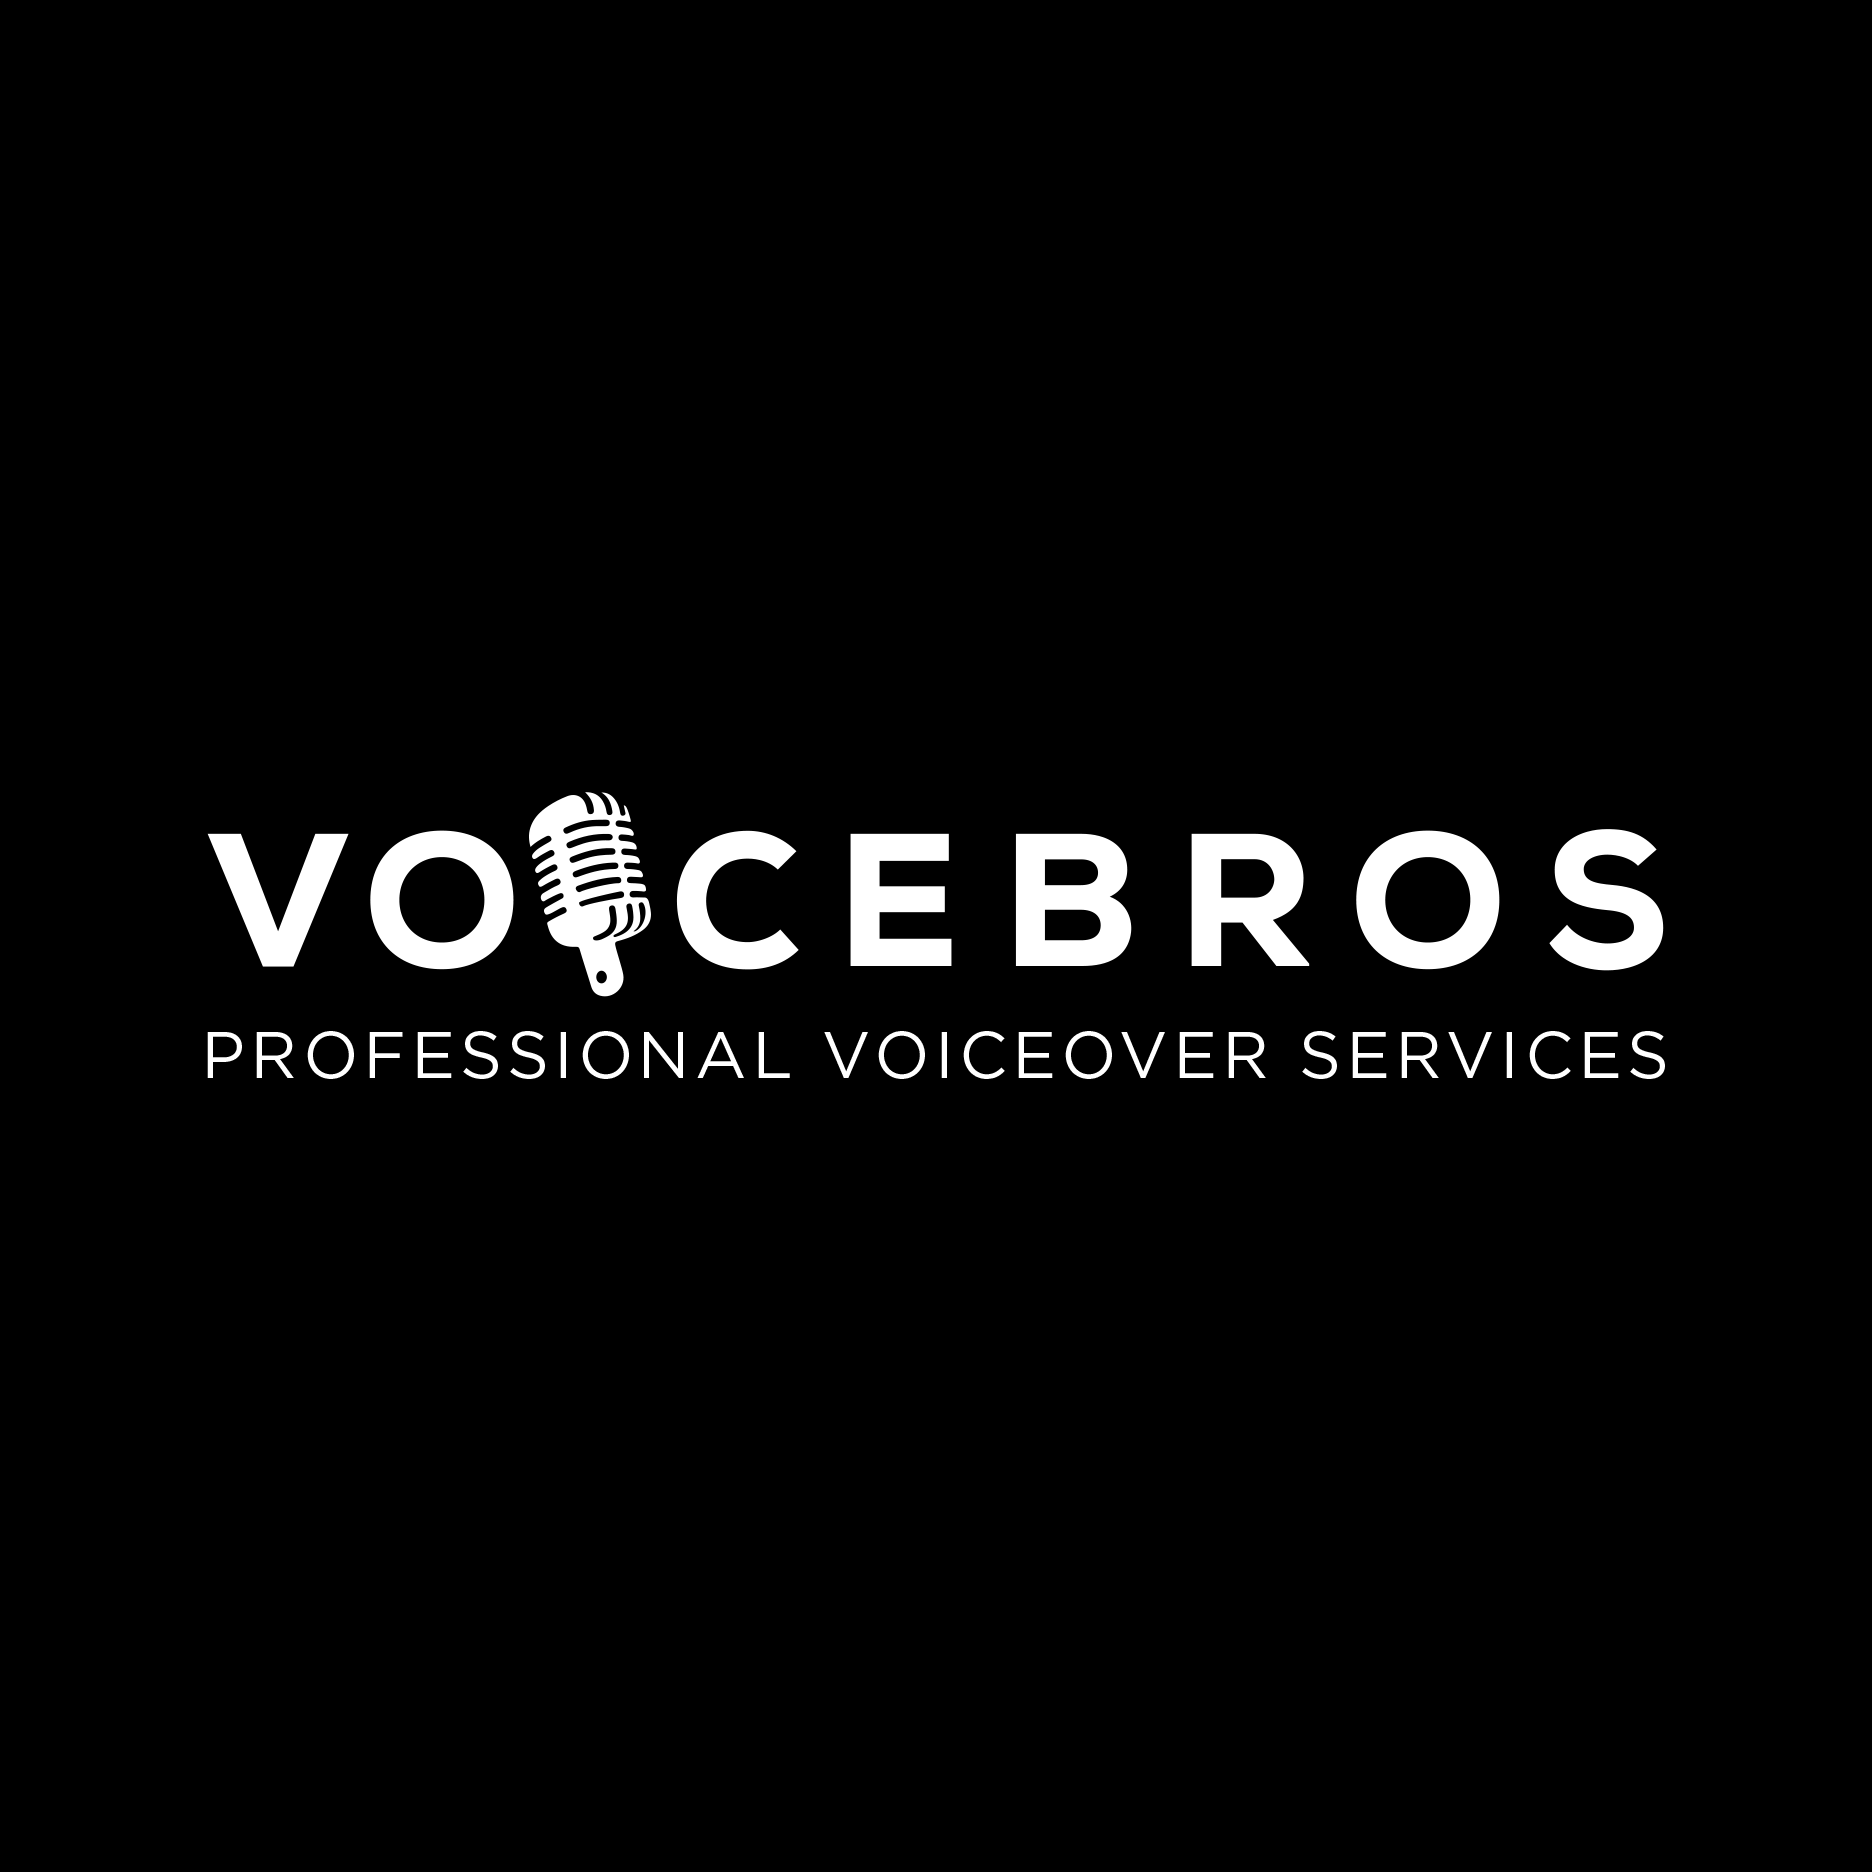 Anthony Kennedy is a voice over actor